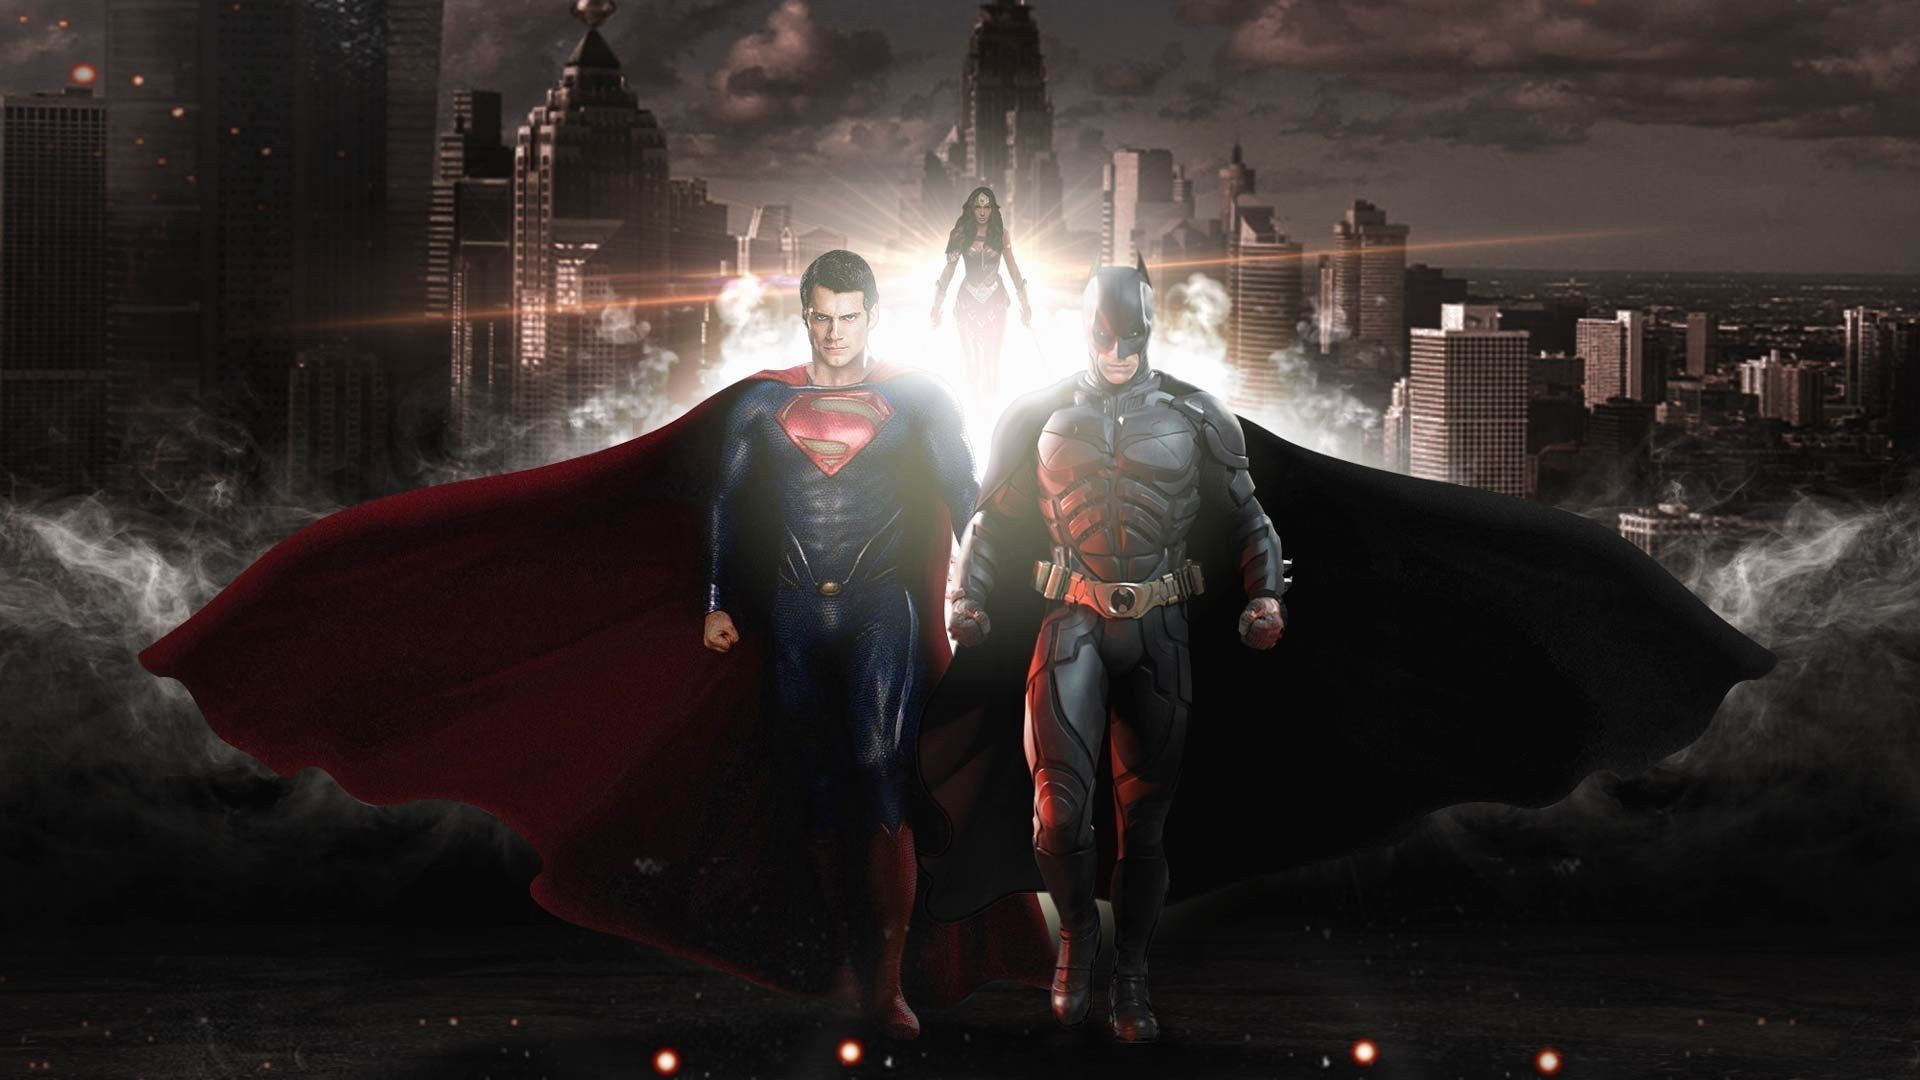 Res: 1920x1080, Fictional Character, Darkness, Doomsday, Superman, Night HD Wallpaper,  Movies Picture, Background and Image